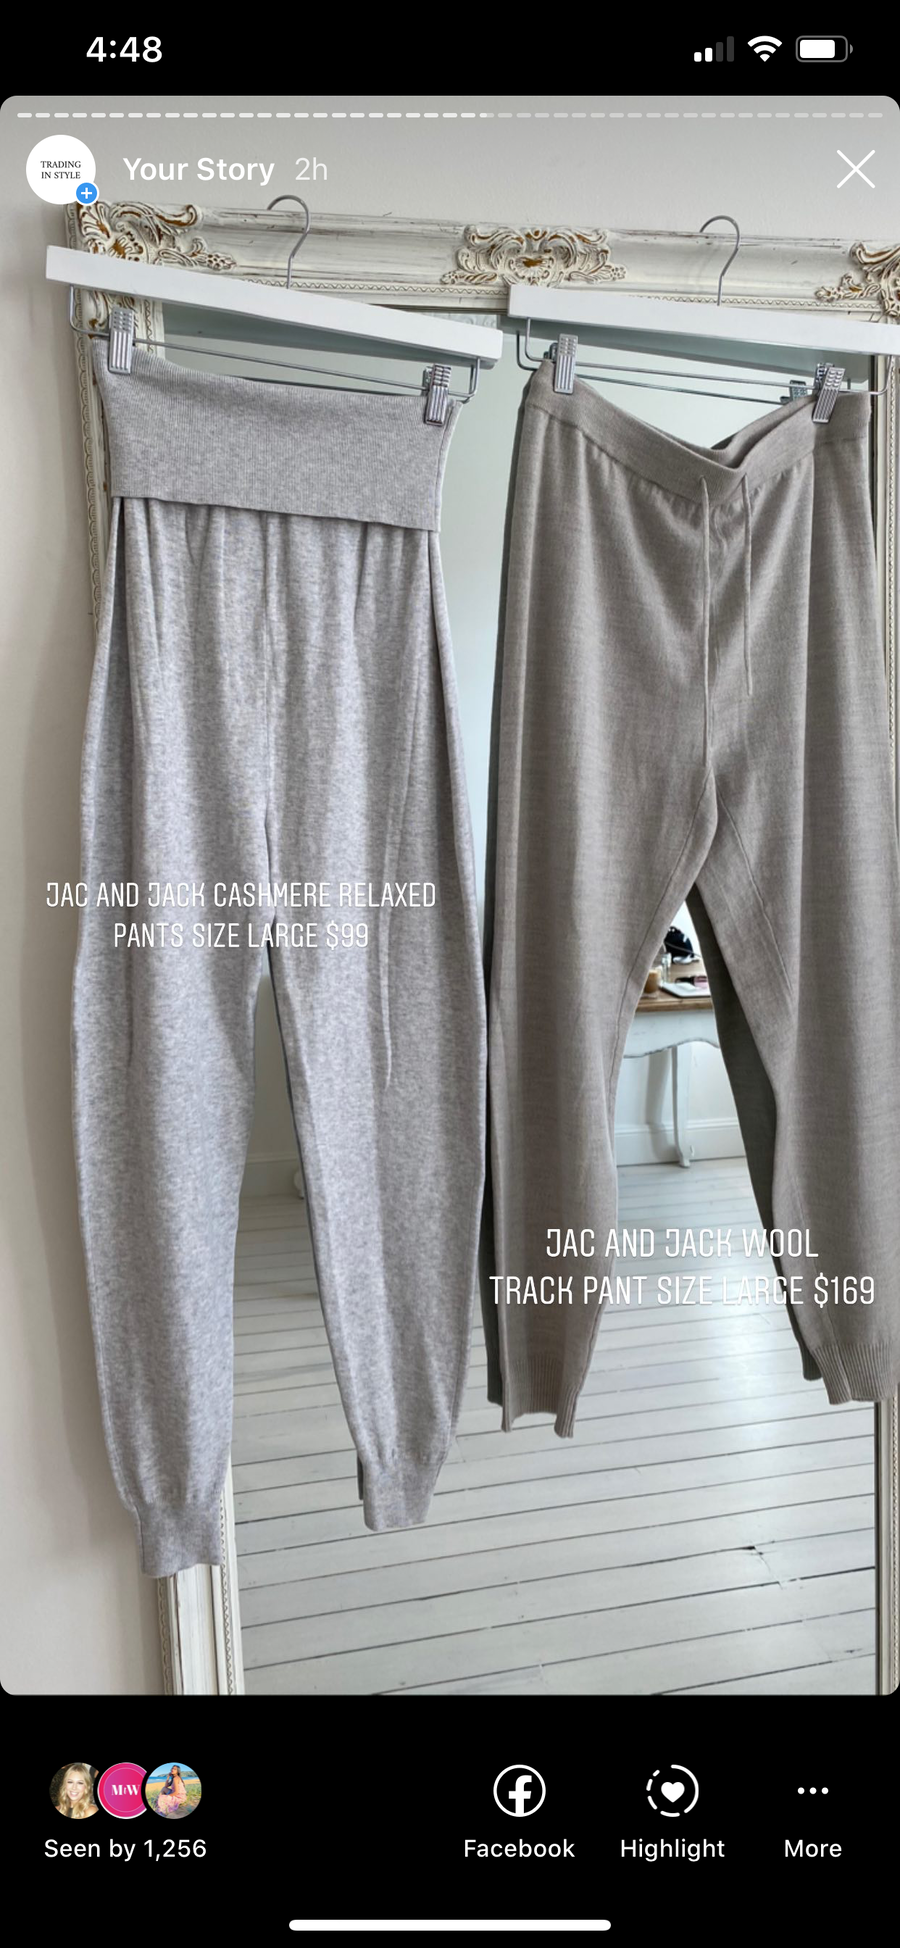 Jac and jack grey cashmere relaxed pants